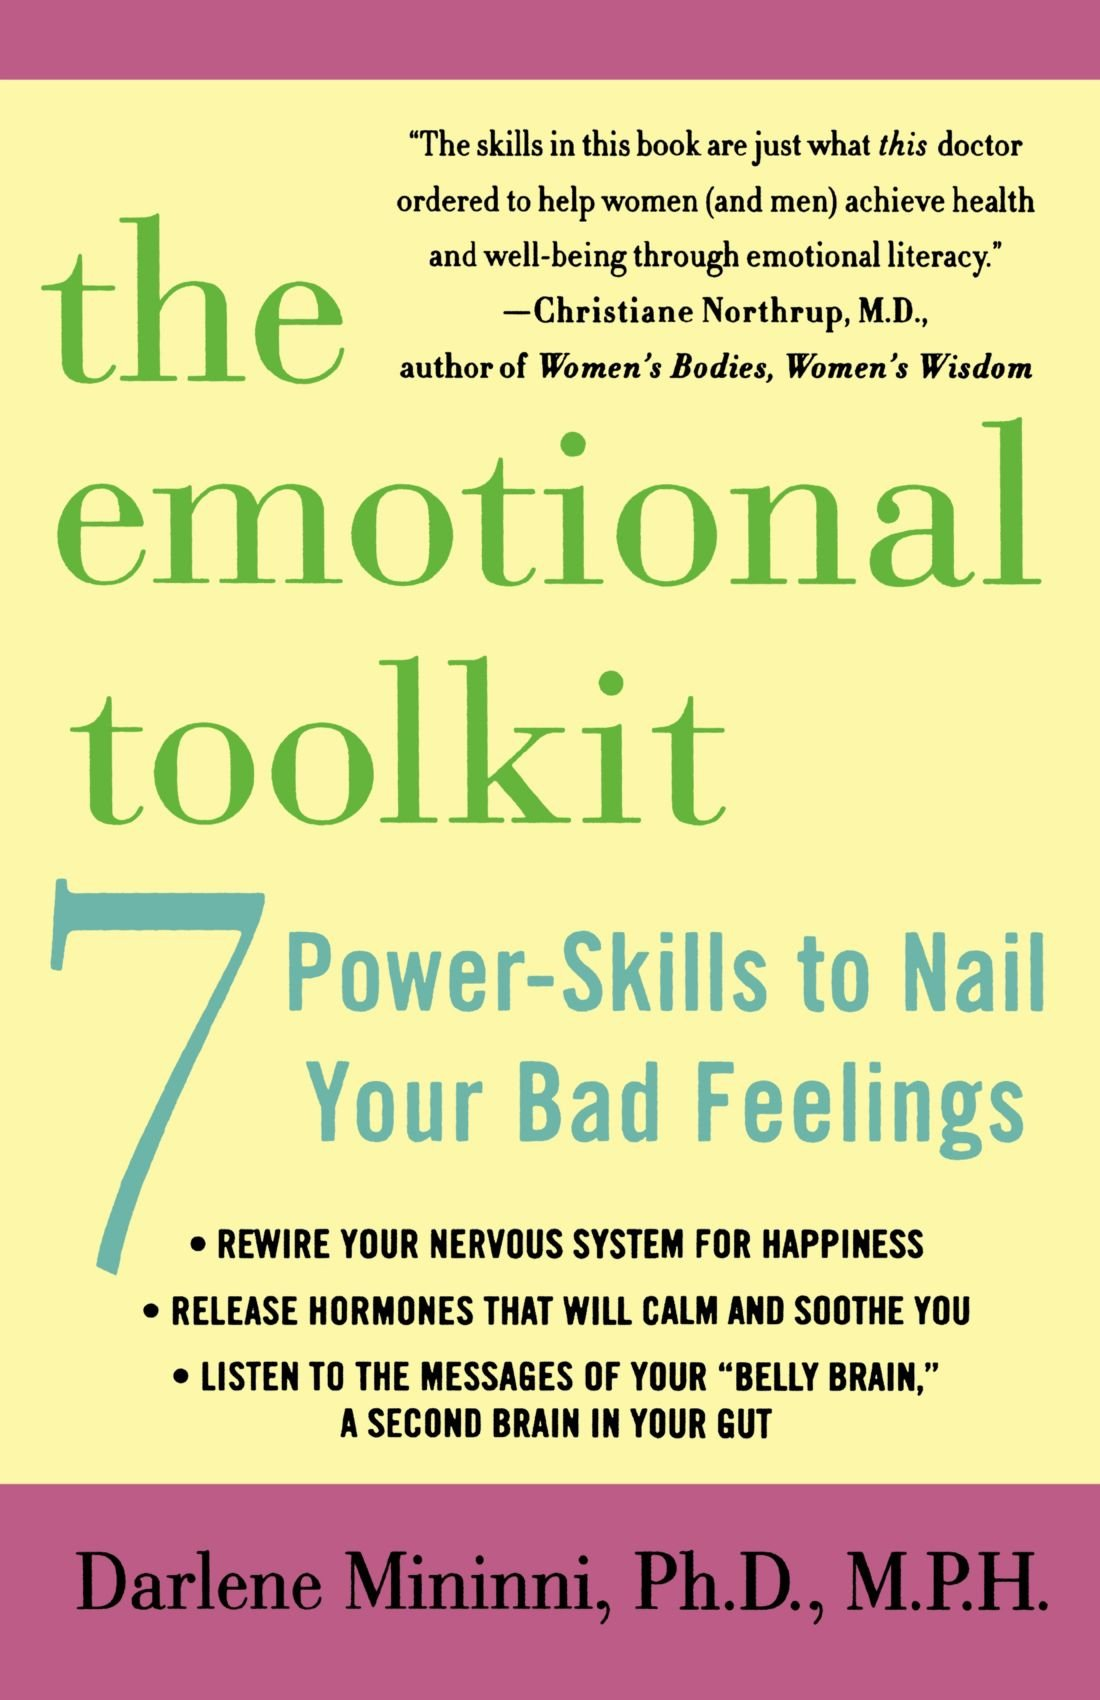 Emotional Toolkit Seven Power Skills Feelings product image